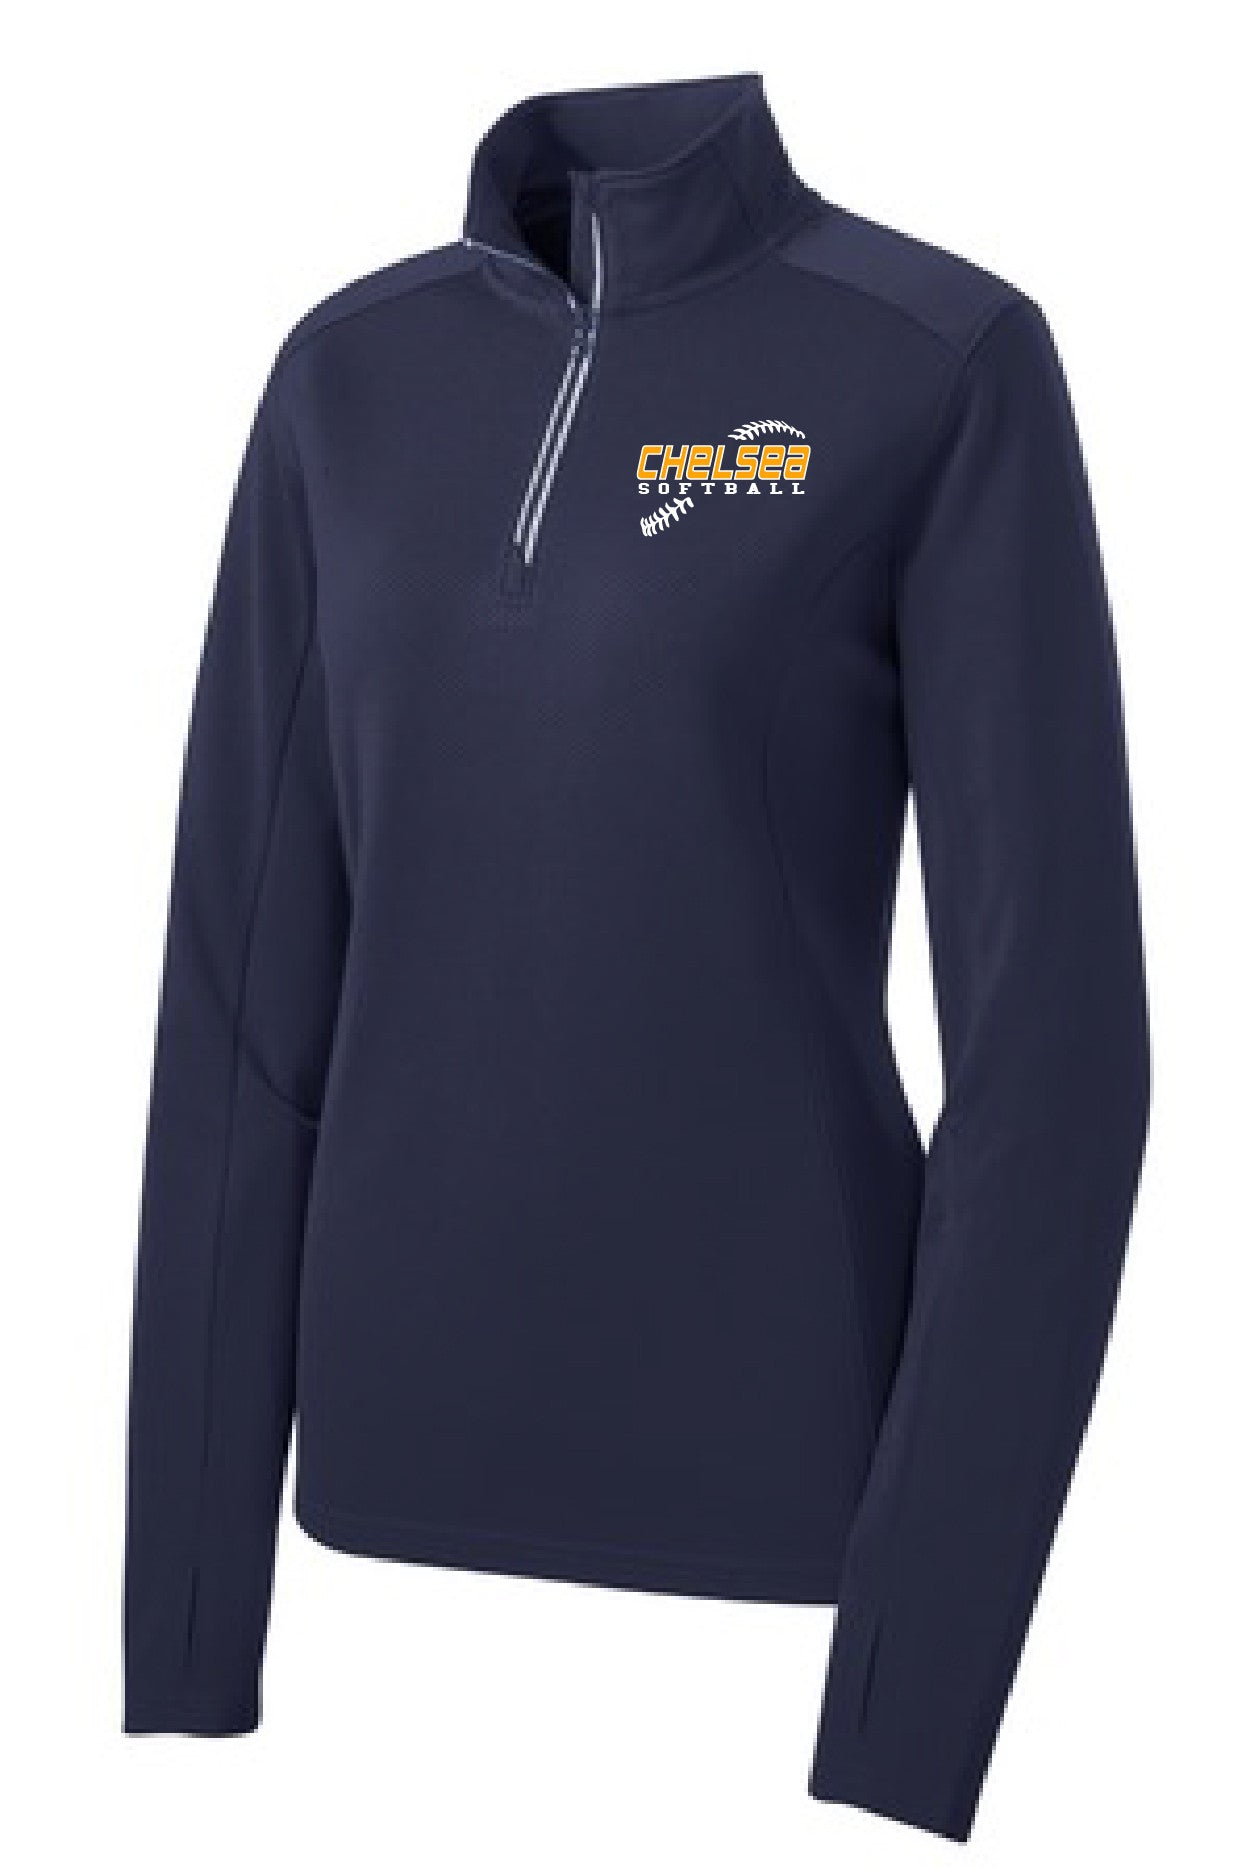 Ladies 1/4 Zip Chelsea Softball Pullover